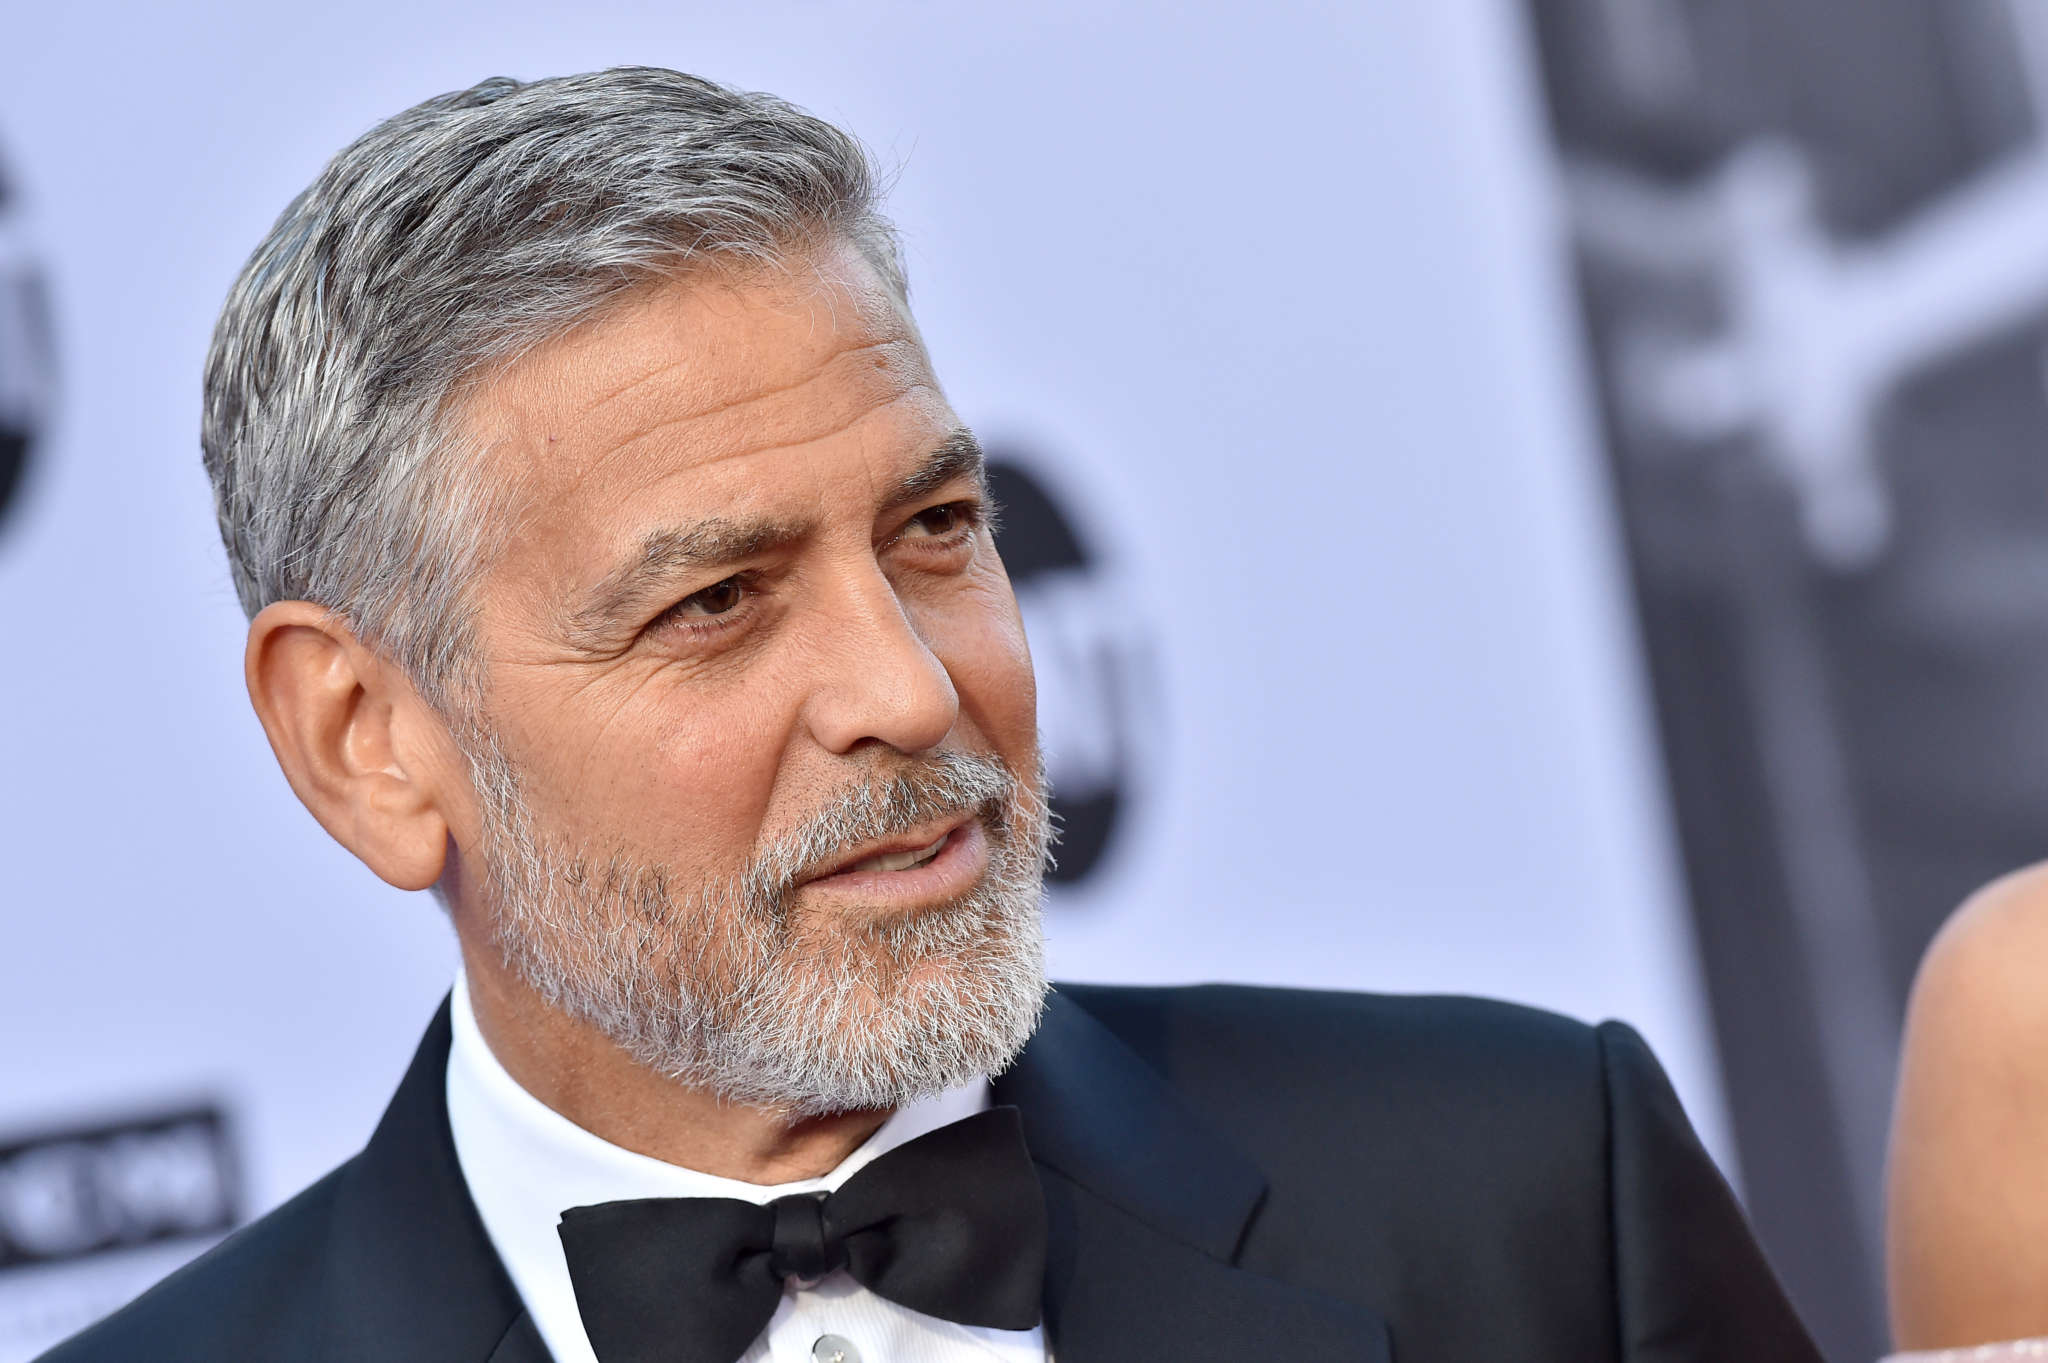 george-clooney-was-rushed-to-the-hospital-after-dropping-nearly-30-pounds-for-new-role-details